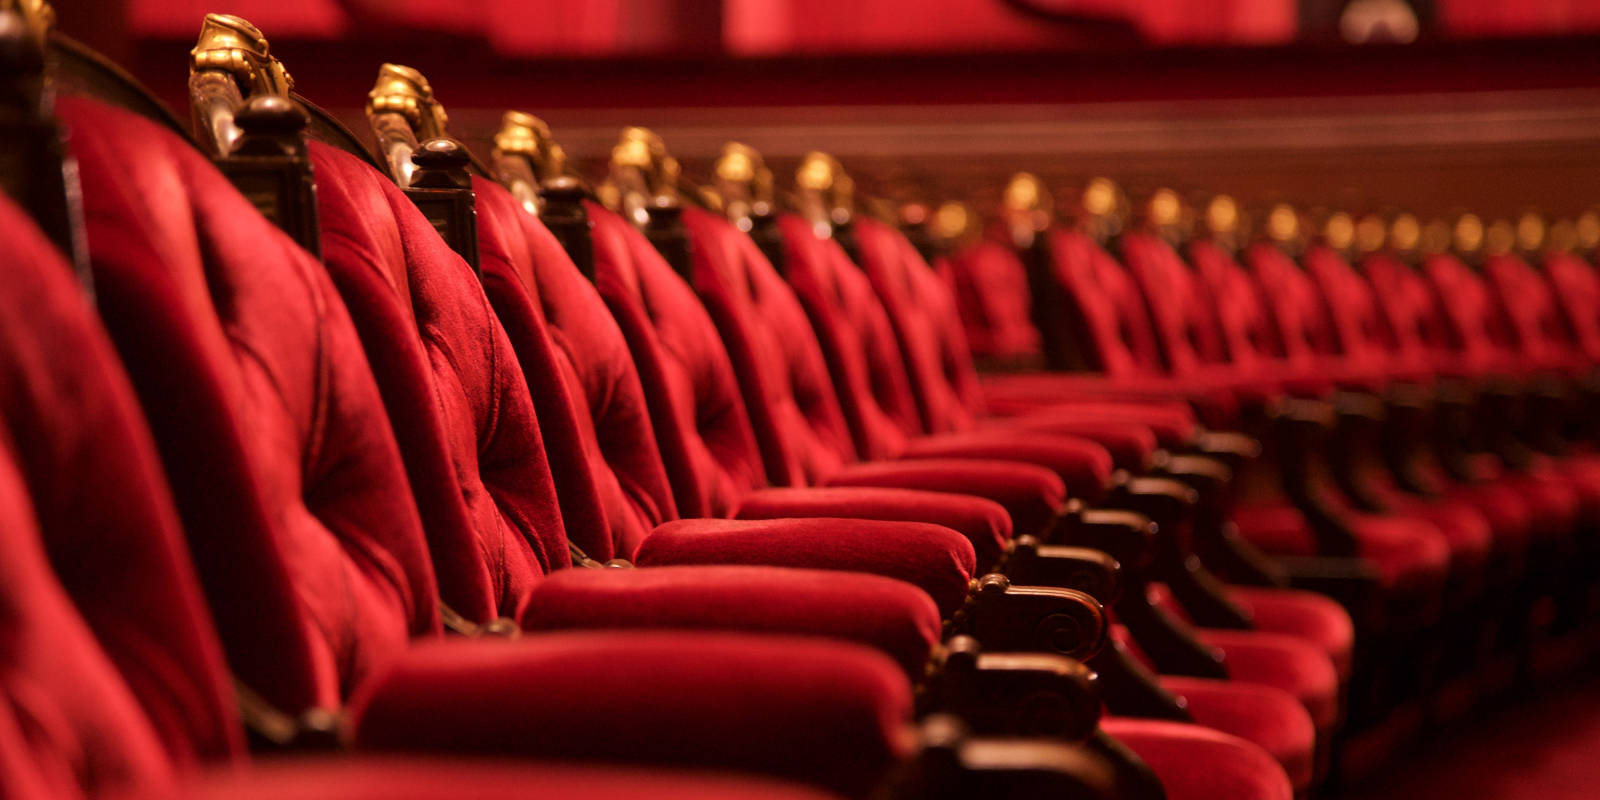 Row of red velvet seats in a theatre